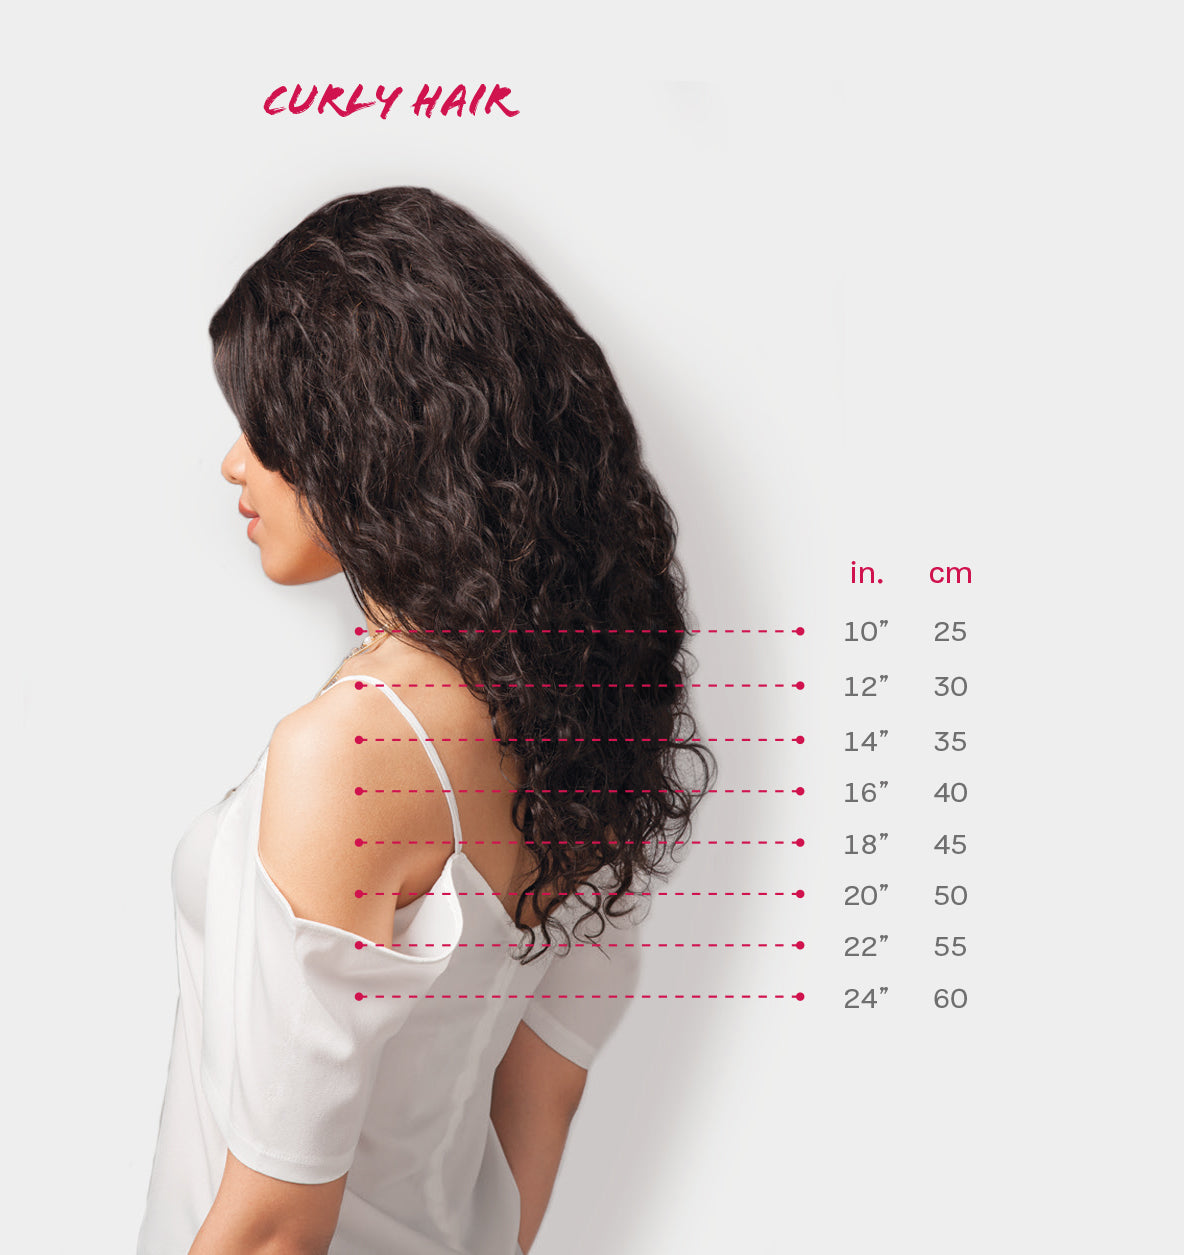 Hair Length Guide - Curly Hair